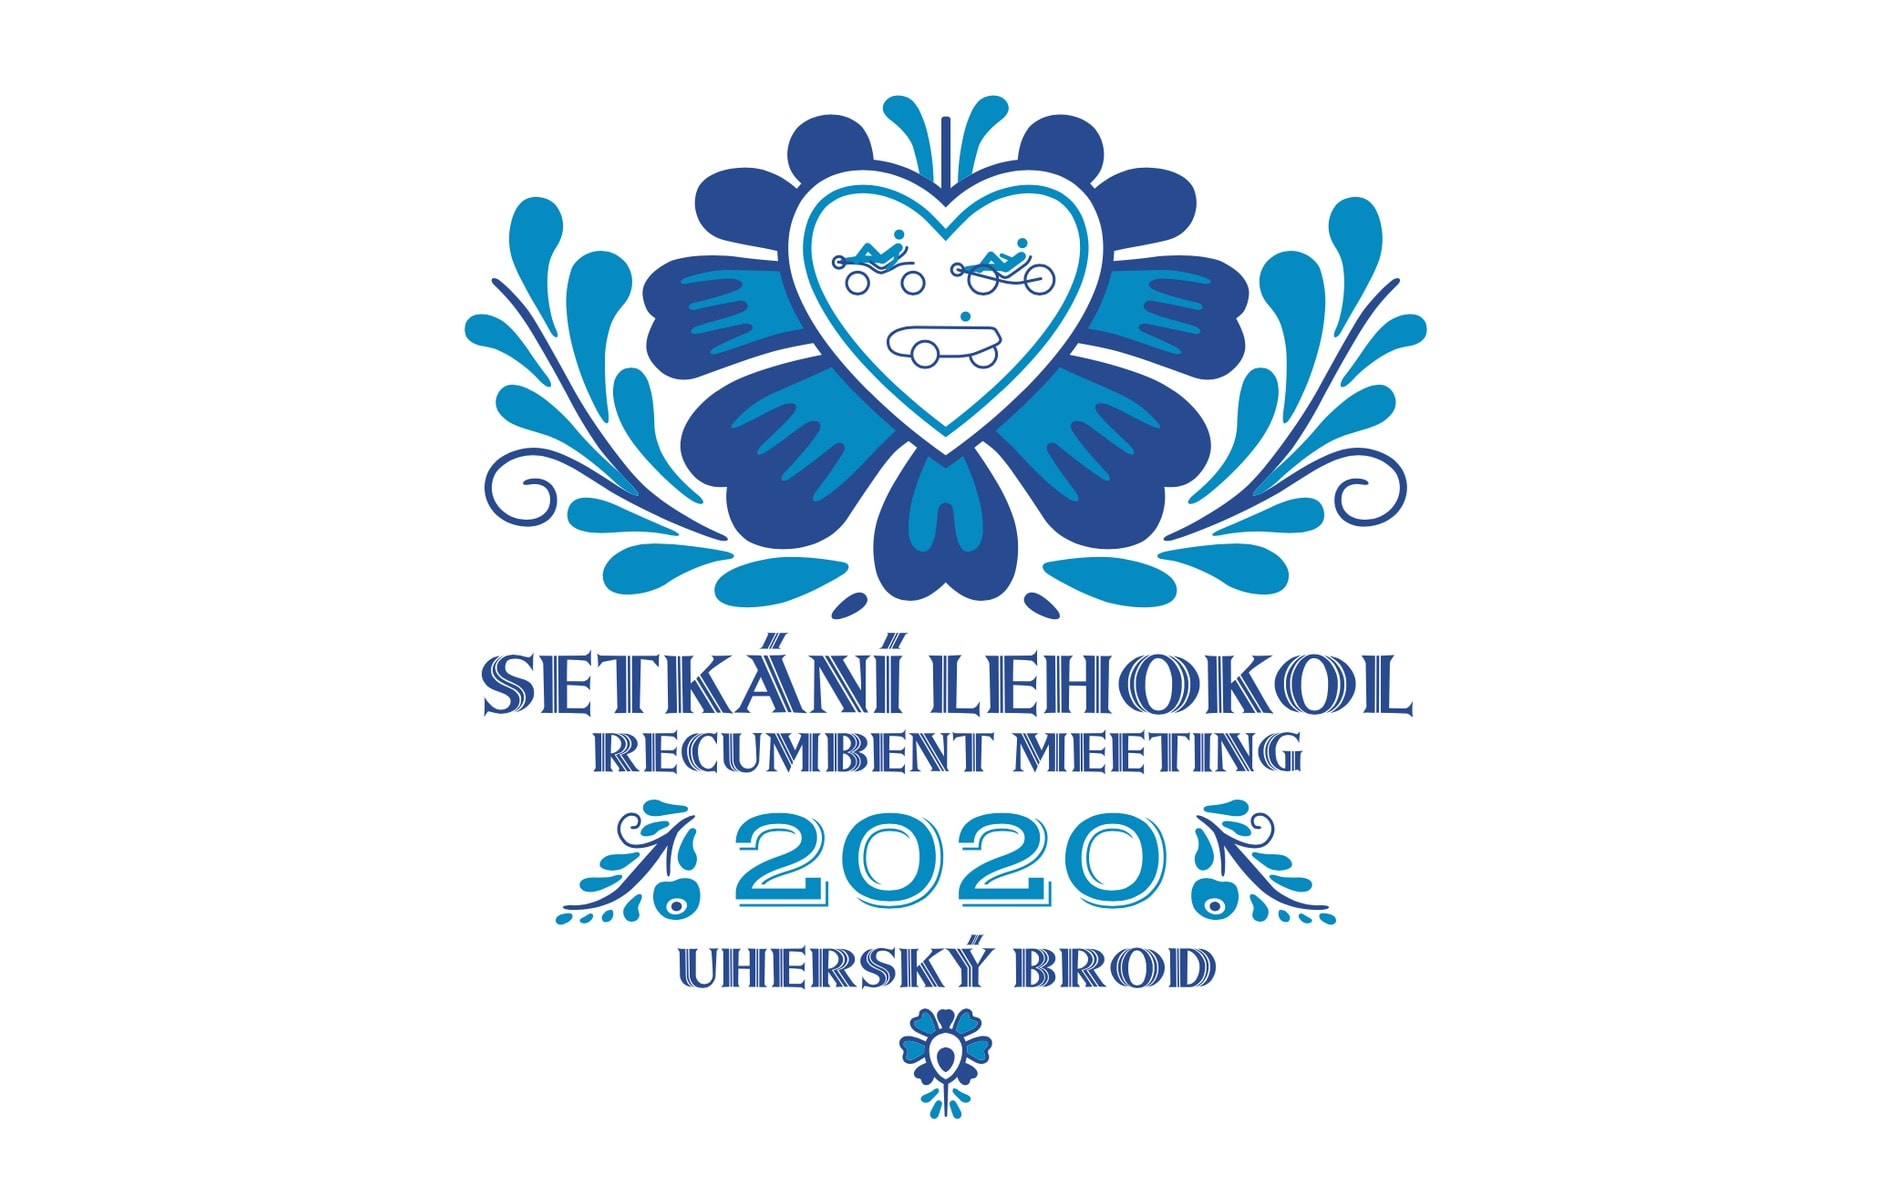 Czech International Recumbent Meeting in Uherský Brod 2020